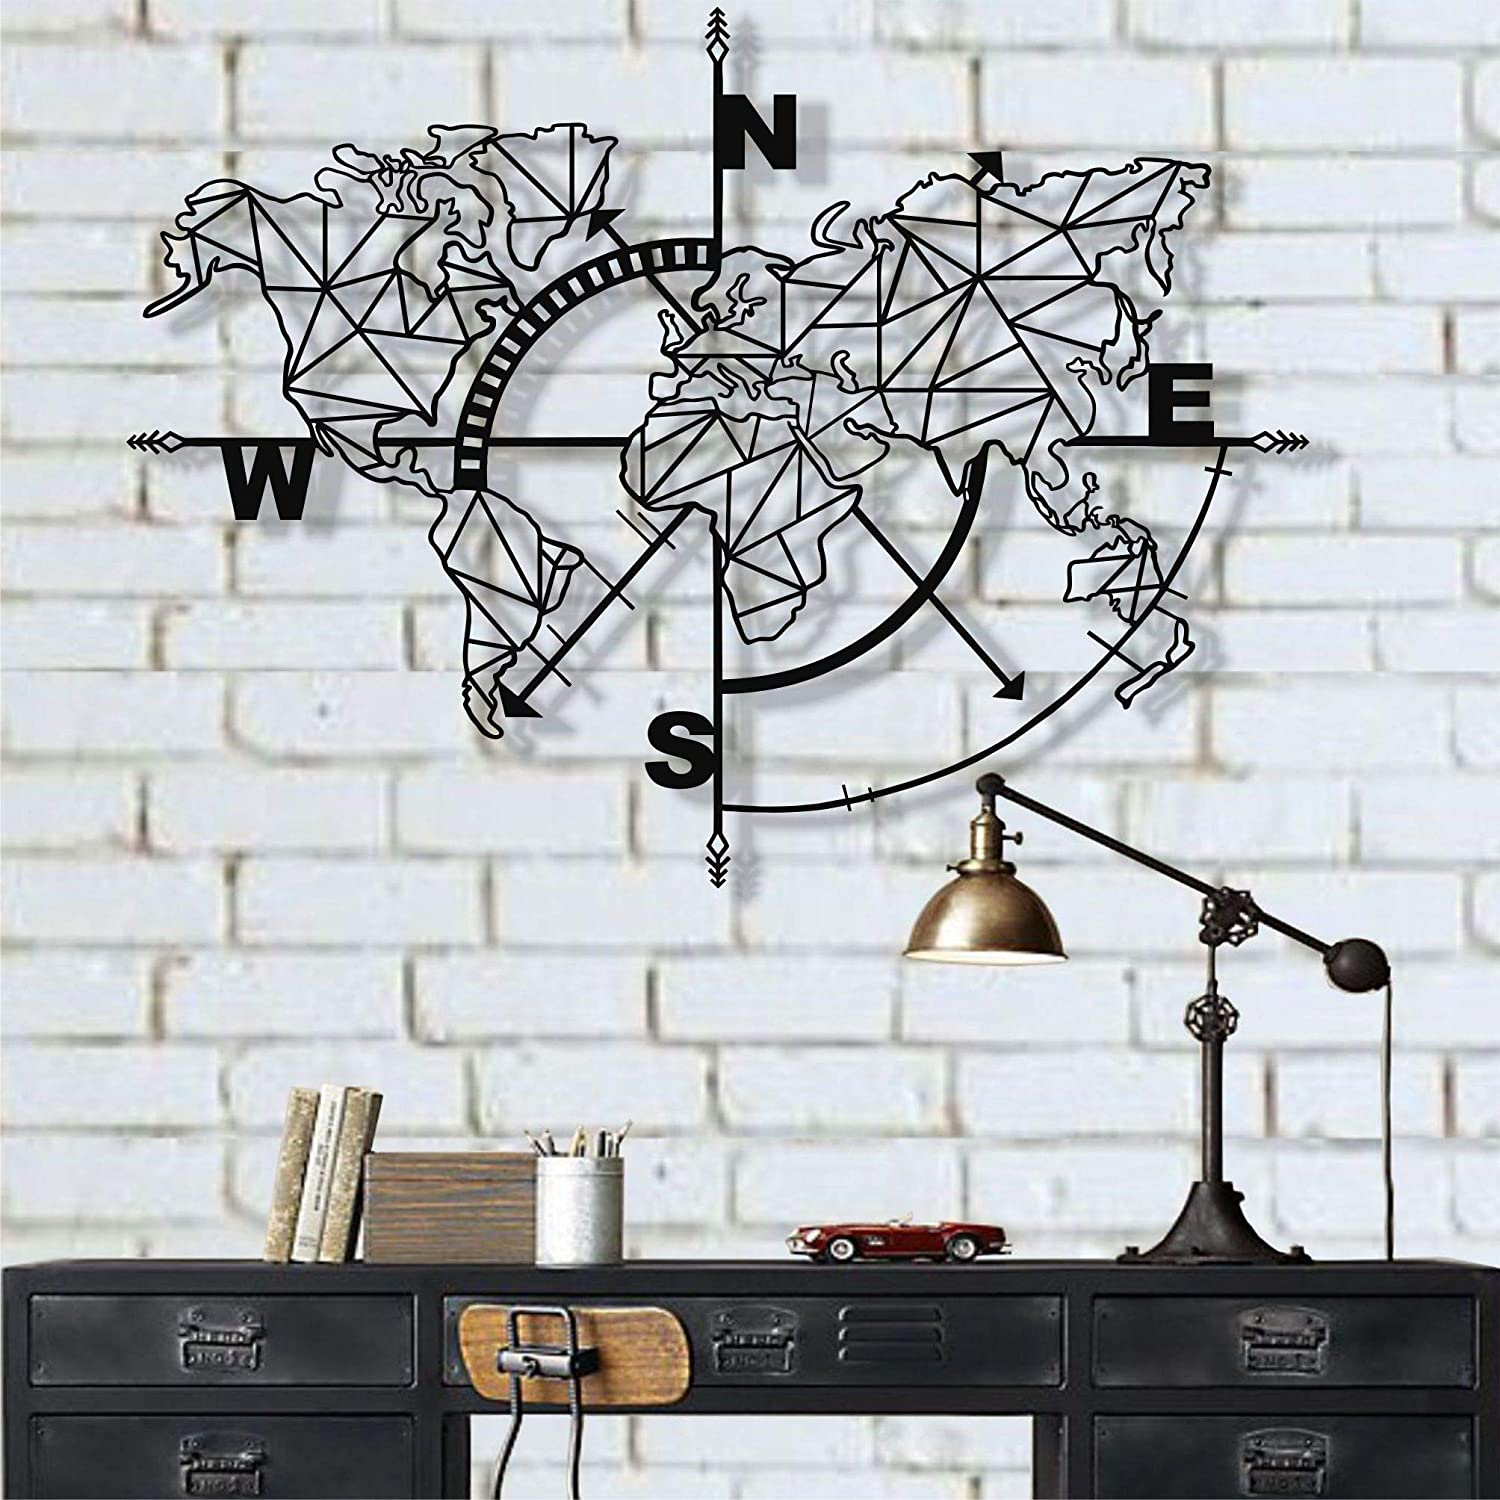 DEKADRON Metal World Map Wall Art Geometric Compass, Metal Wall Decor Art Work, Metal Sign, Metal Wall Art, Metal Art, Wall Decoration Home Decor (Black, 55